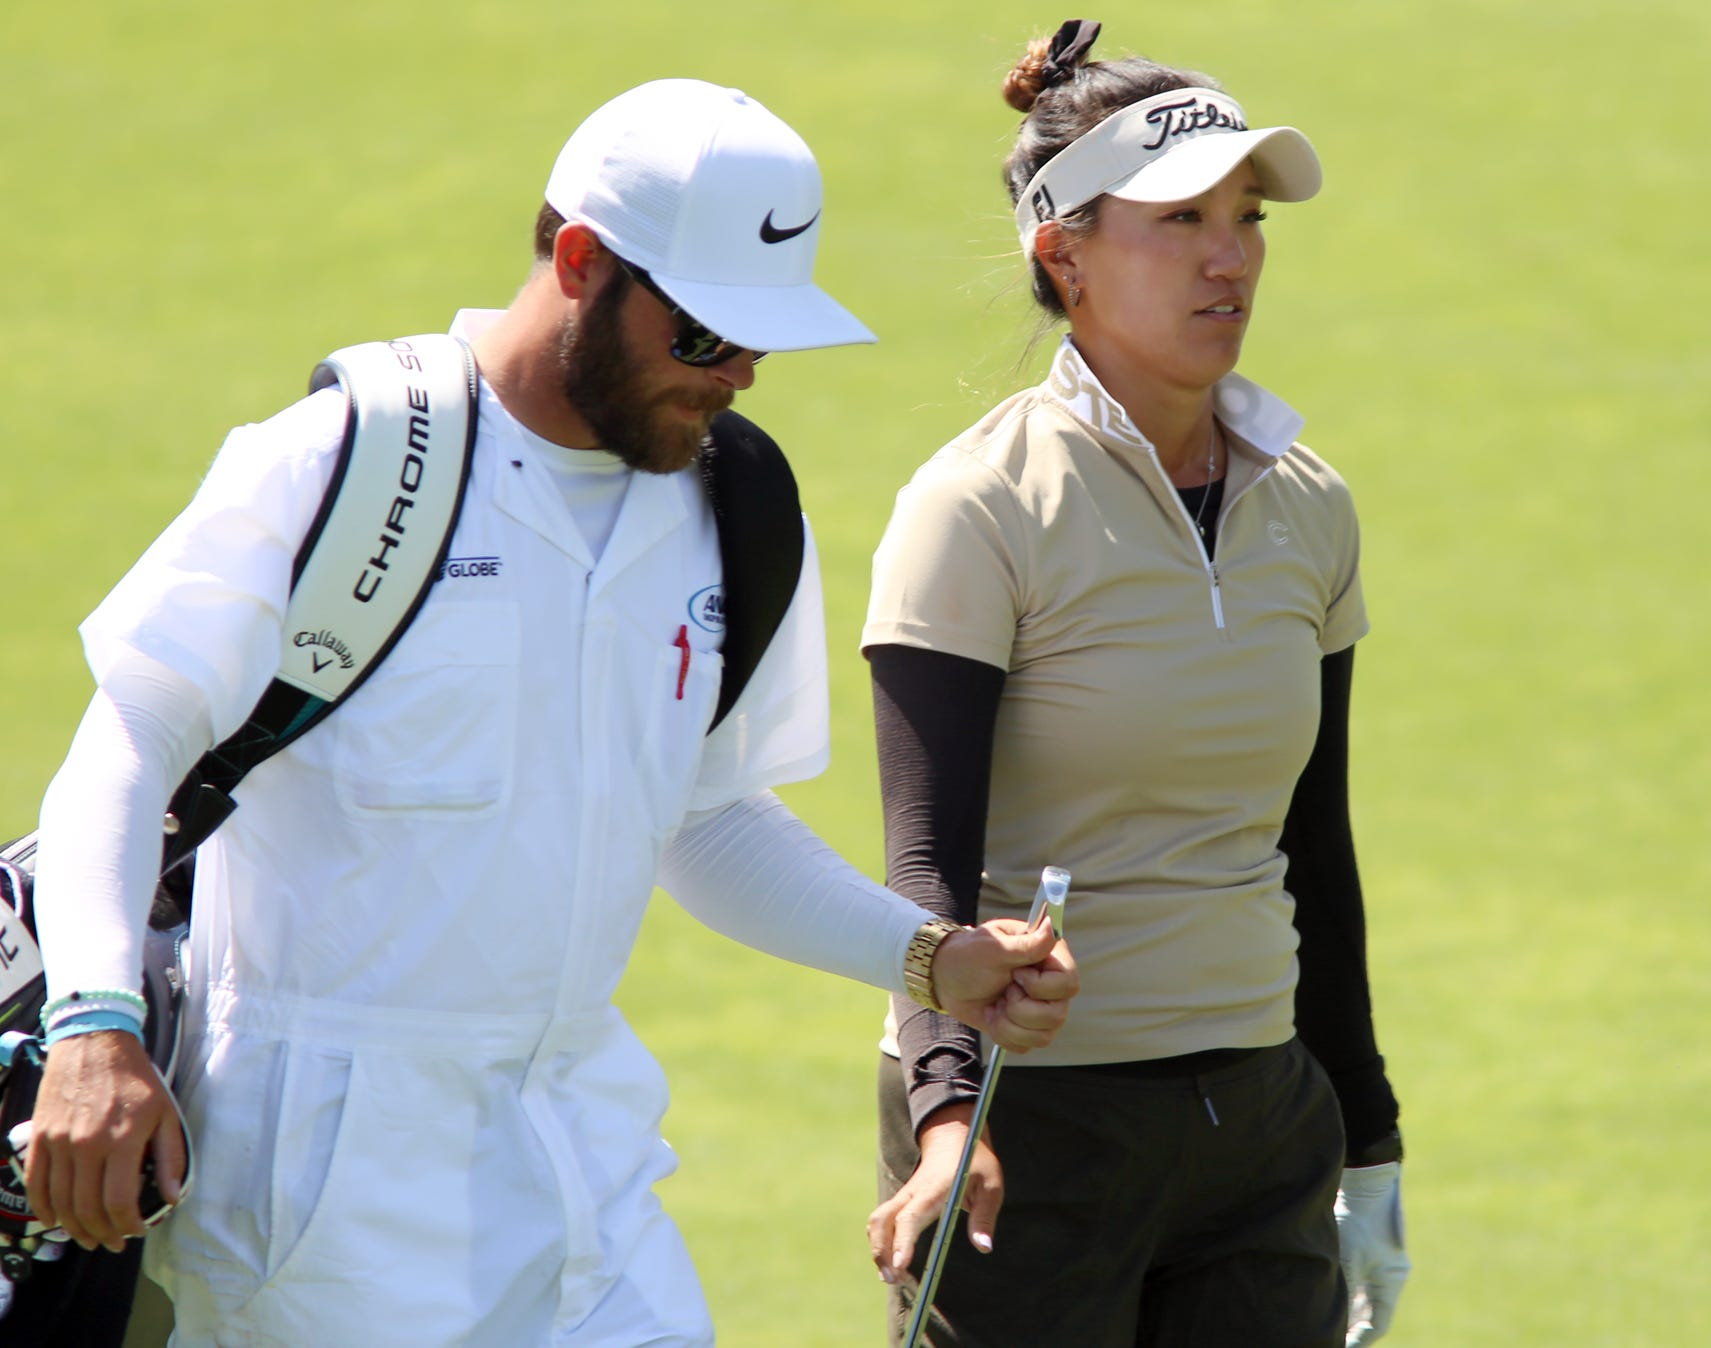 Annie Park (right) and her caddie Josh Williams decide on a club Friday during her second round at the ANA Inspiration. Park's clubs were stolen out of her car on Thursday morning and she had to use a cobbled together set during the tournament.